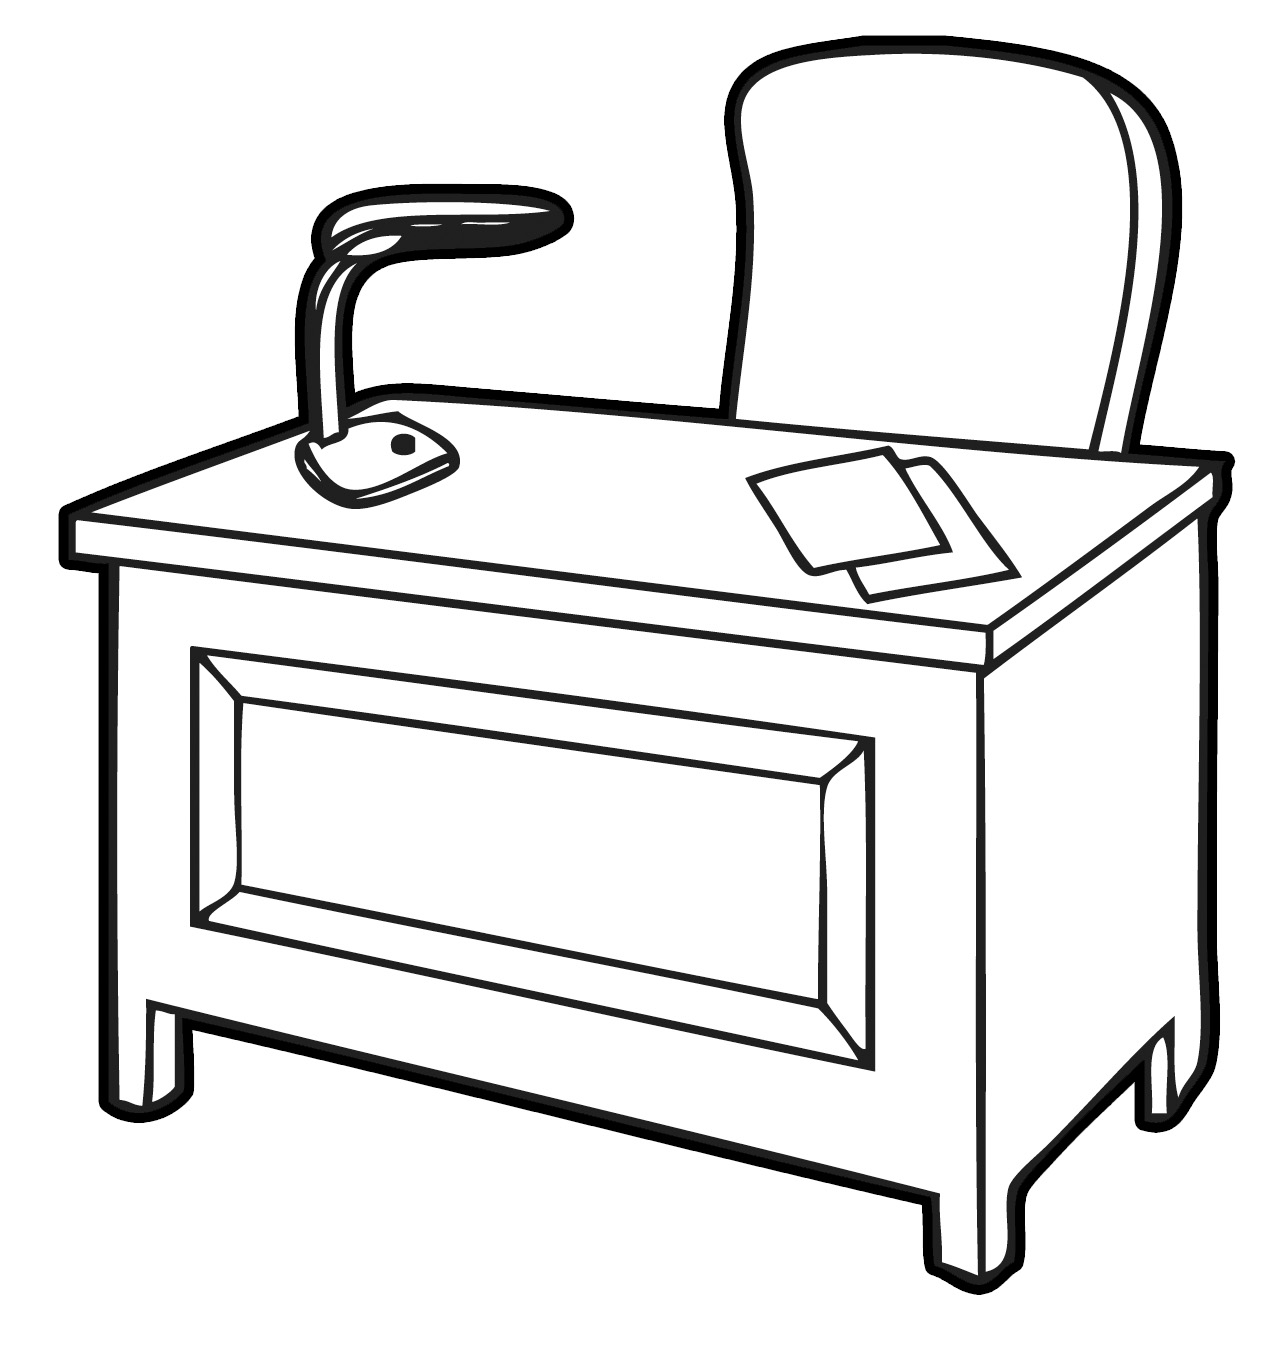 Office furniture clipart free graphic transparent download Free Office Furniture Clipart, Download Free Clip Art, Free Clip Art ... graphic transparent download